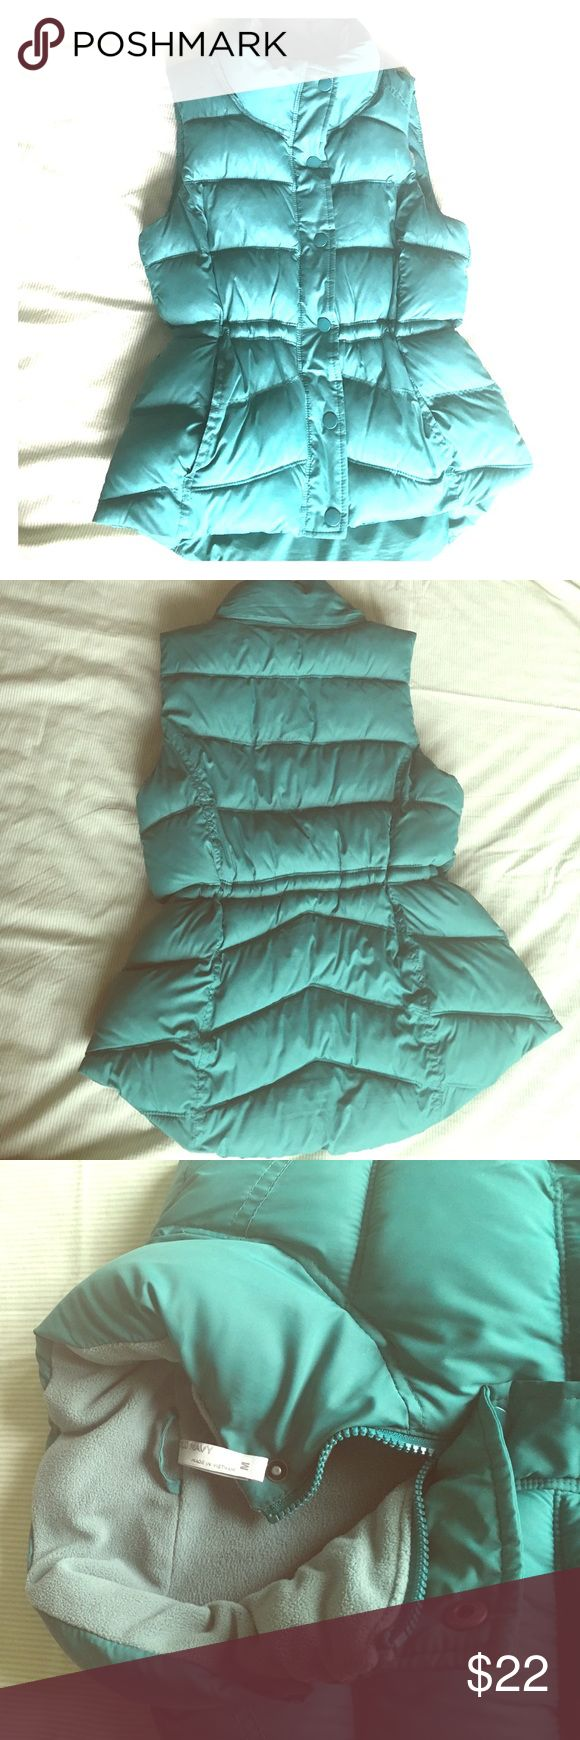 Old Navy fitted puffer vest Turquoise/teal color, worn twice, warm, zipper and snap buttons, cinchable waist, high/low style, great condition! Old Navy Jackets & Coats Vests